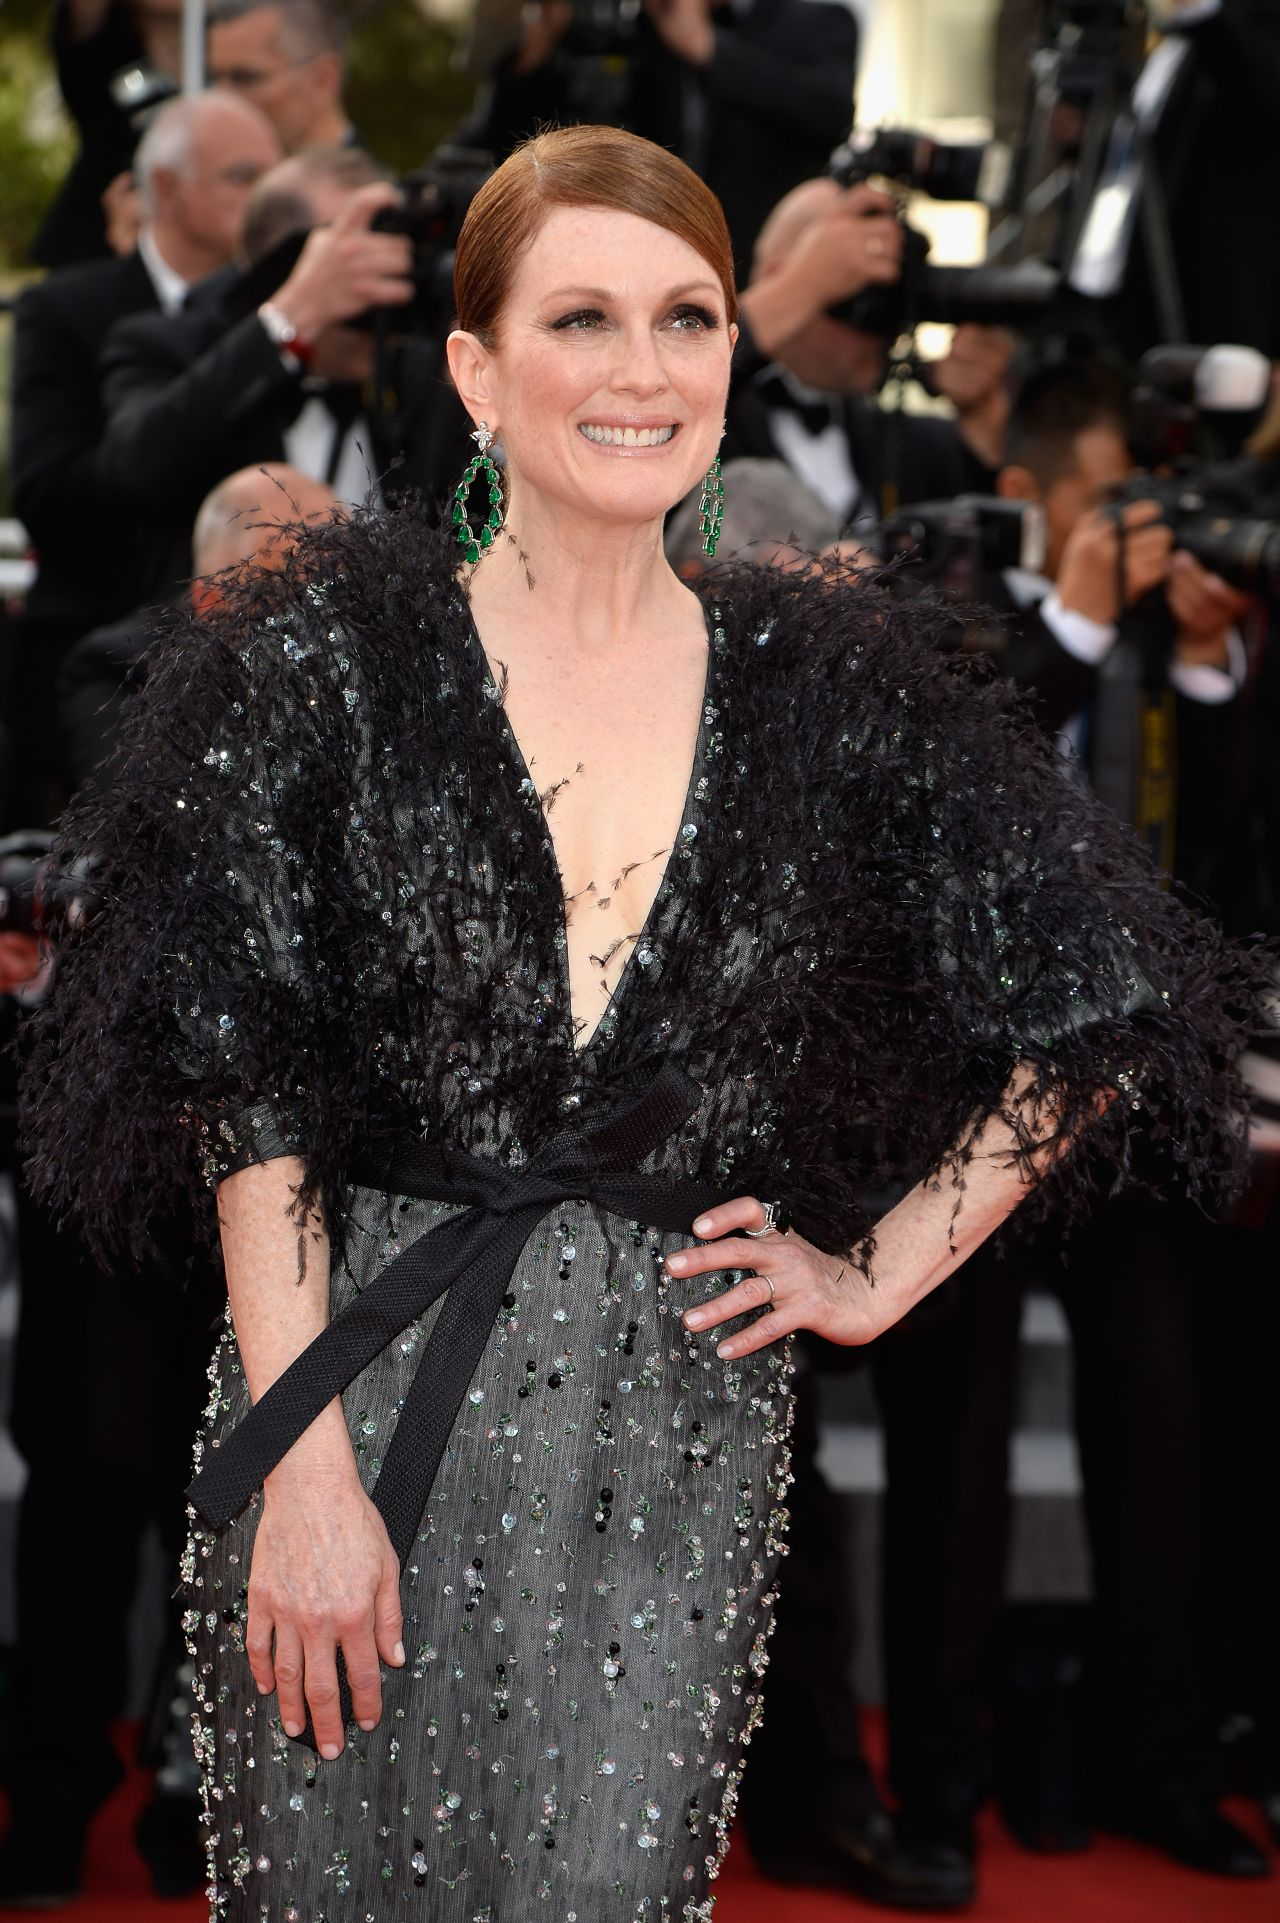 jjulianne-moore-in-armani-prive-at-the-standing-tall-68th-cannes-film-festival-premiere-opening-ceremony